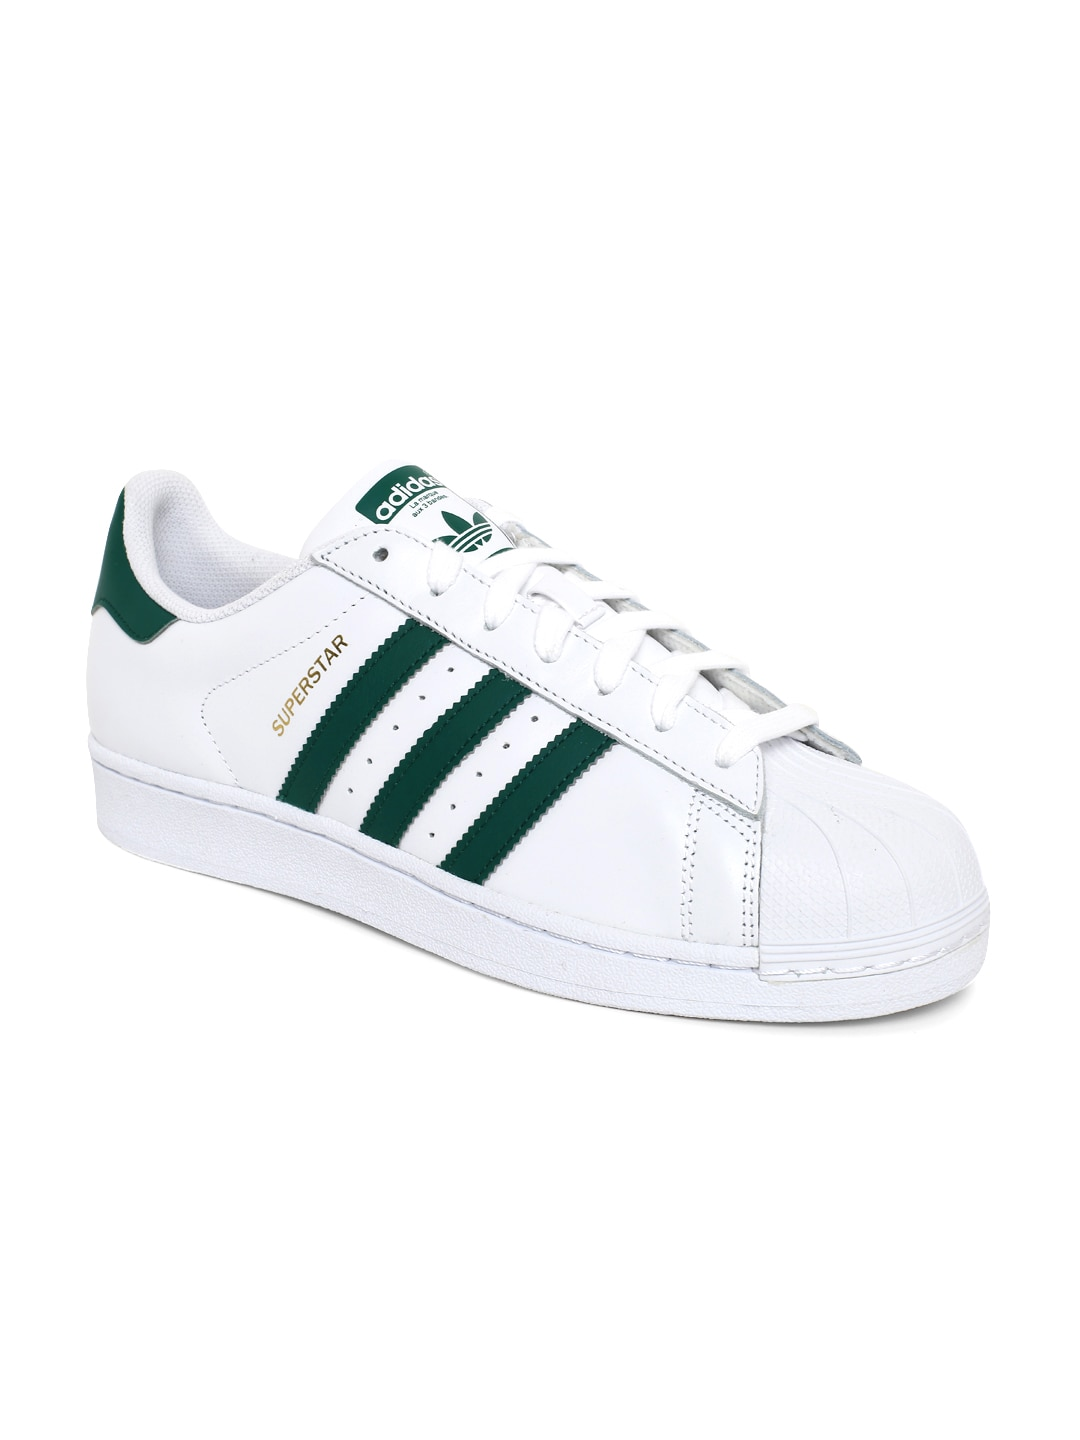 detailed pictures 7dd38 a99bb Adidas Superstar Shoes - Buy Adidas Superstar Shoes Online - Myntra